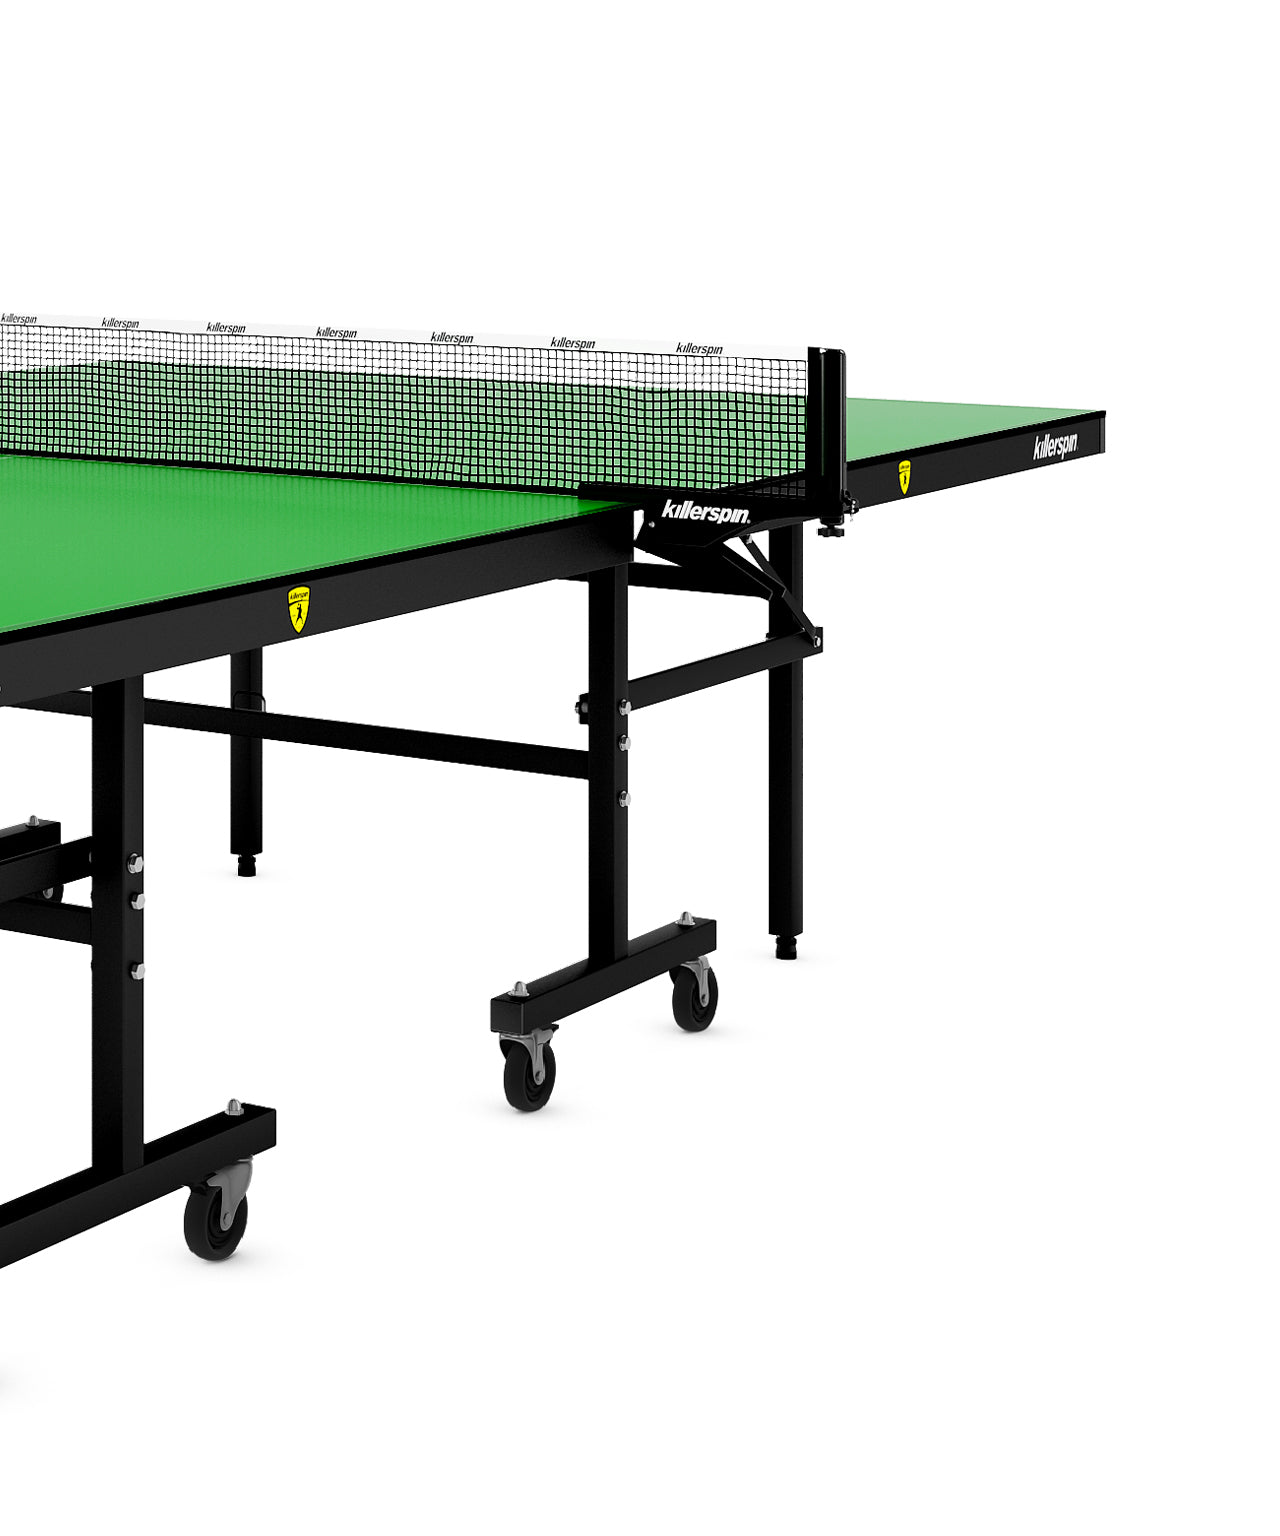 Killerspin MyT Ping Pong Table MyT4 Lime - Net